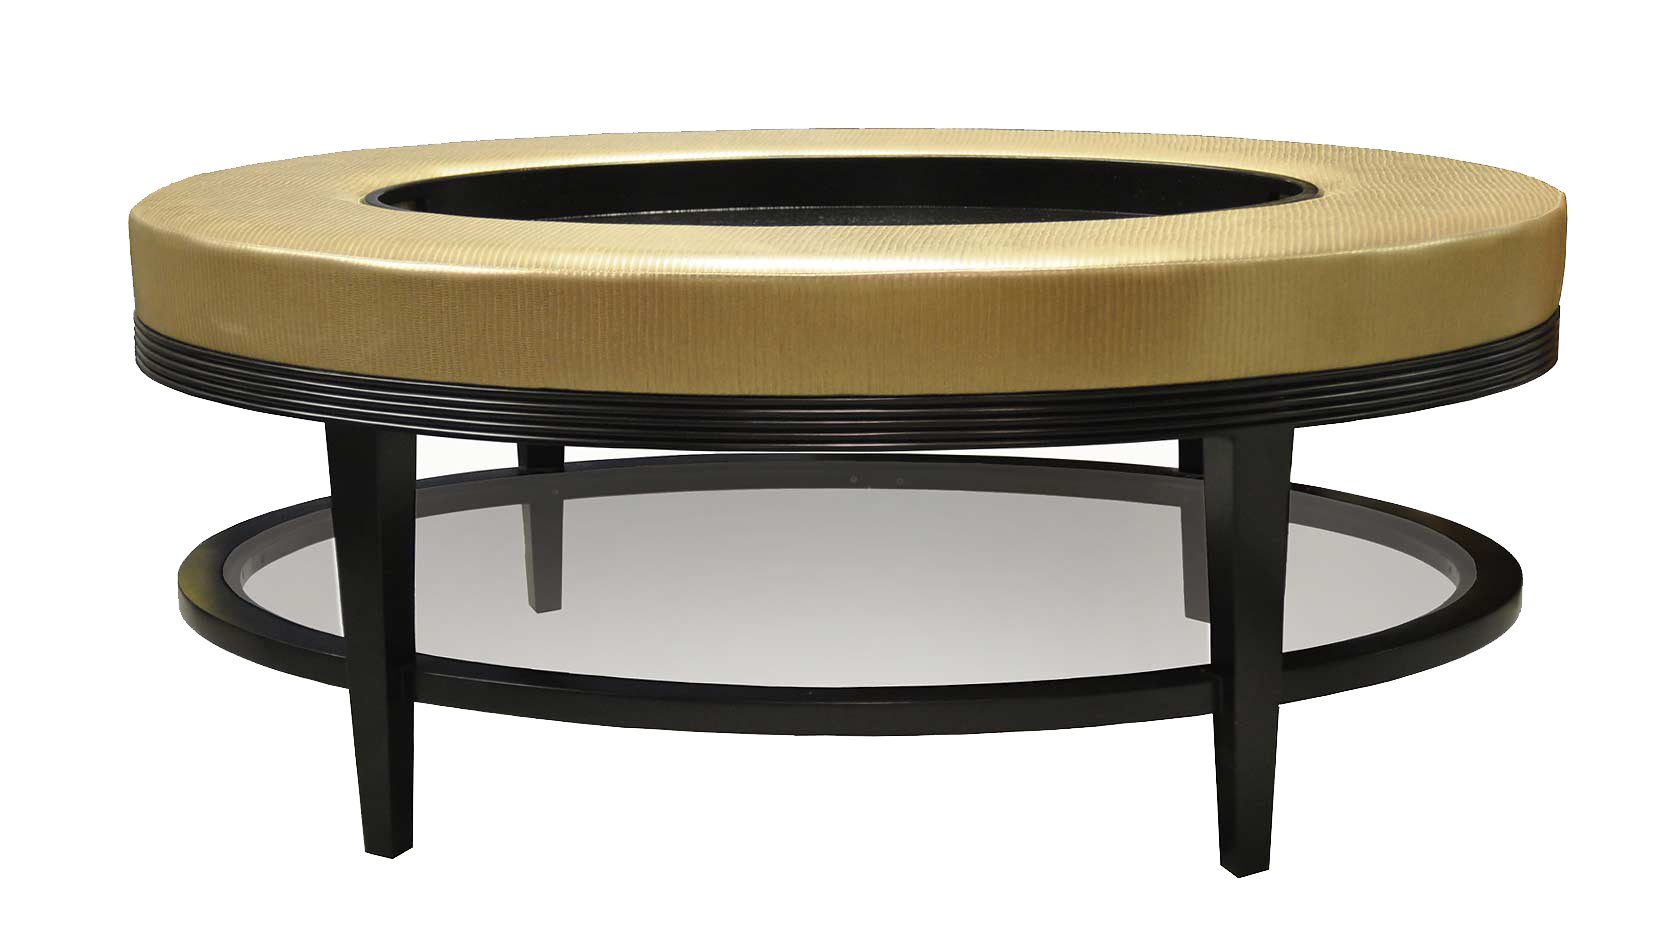 Dual Purpose Coffee Tables Plush Home Carlisle Oval Coffee Table Ottoman